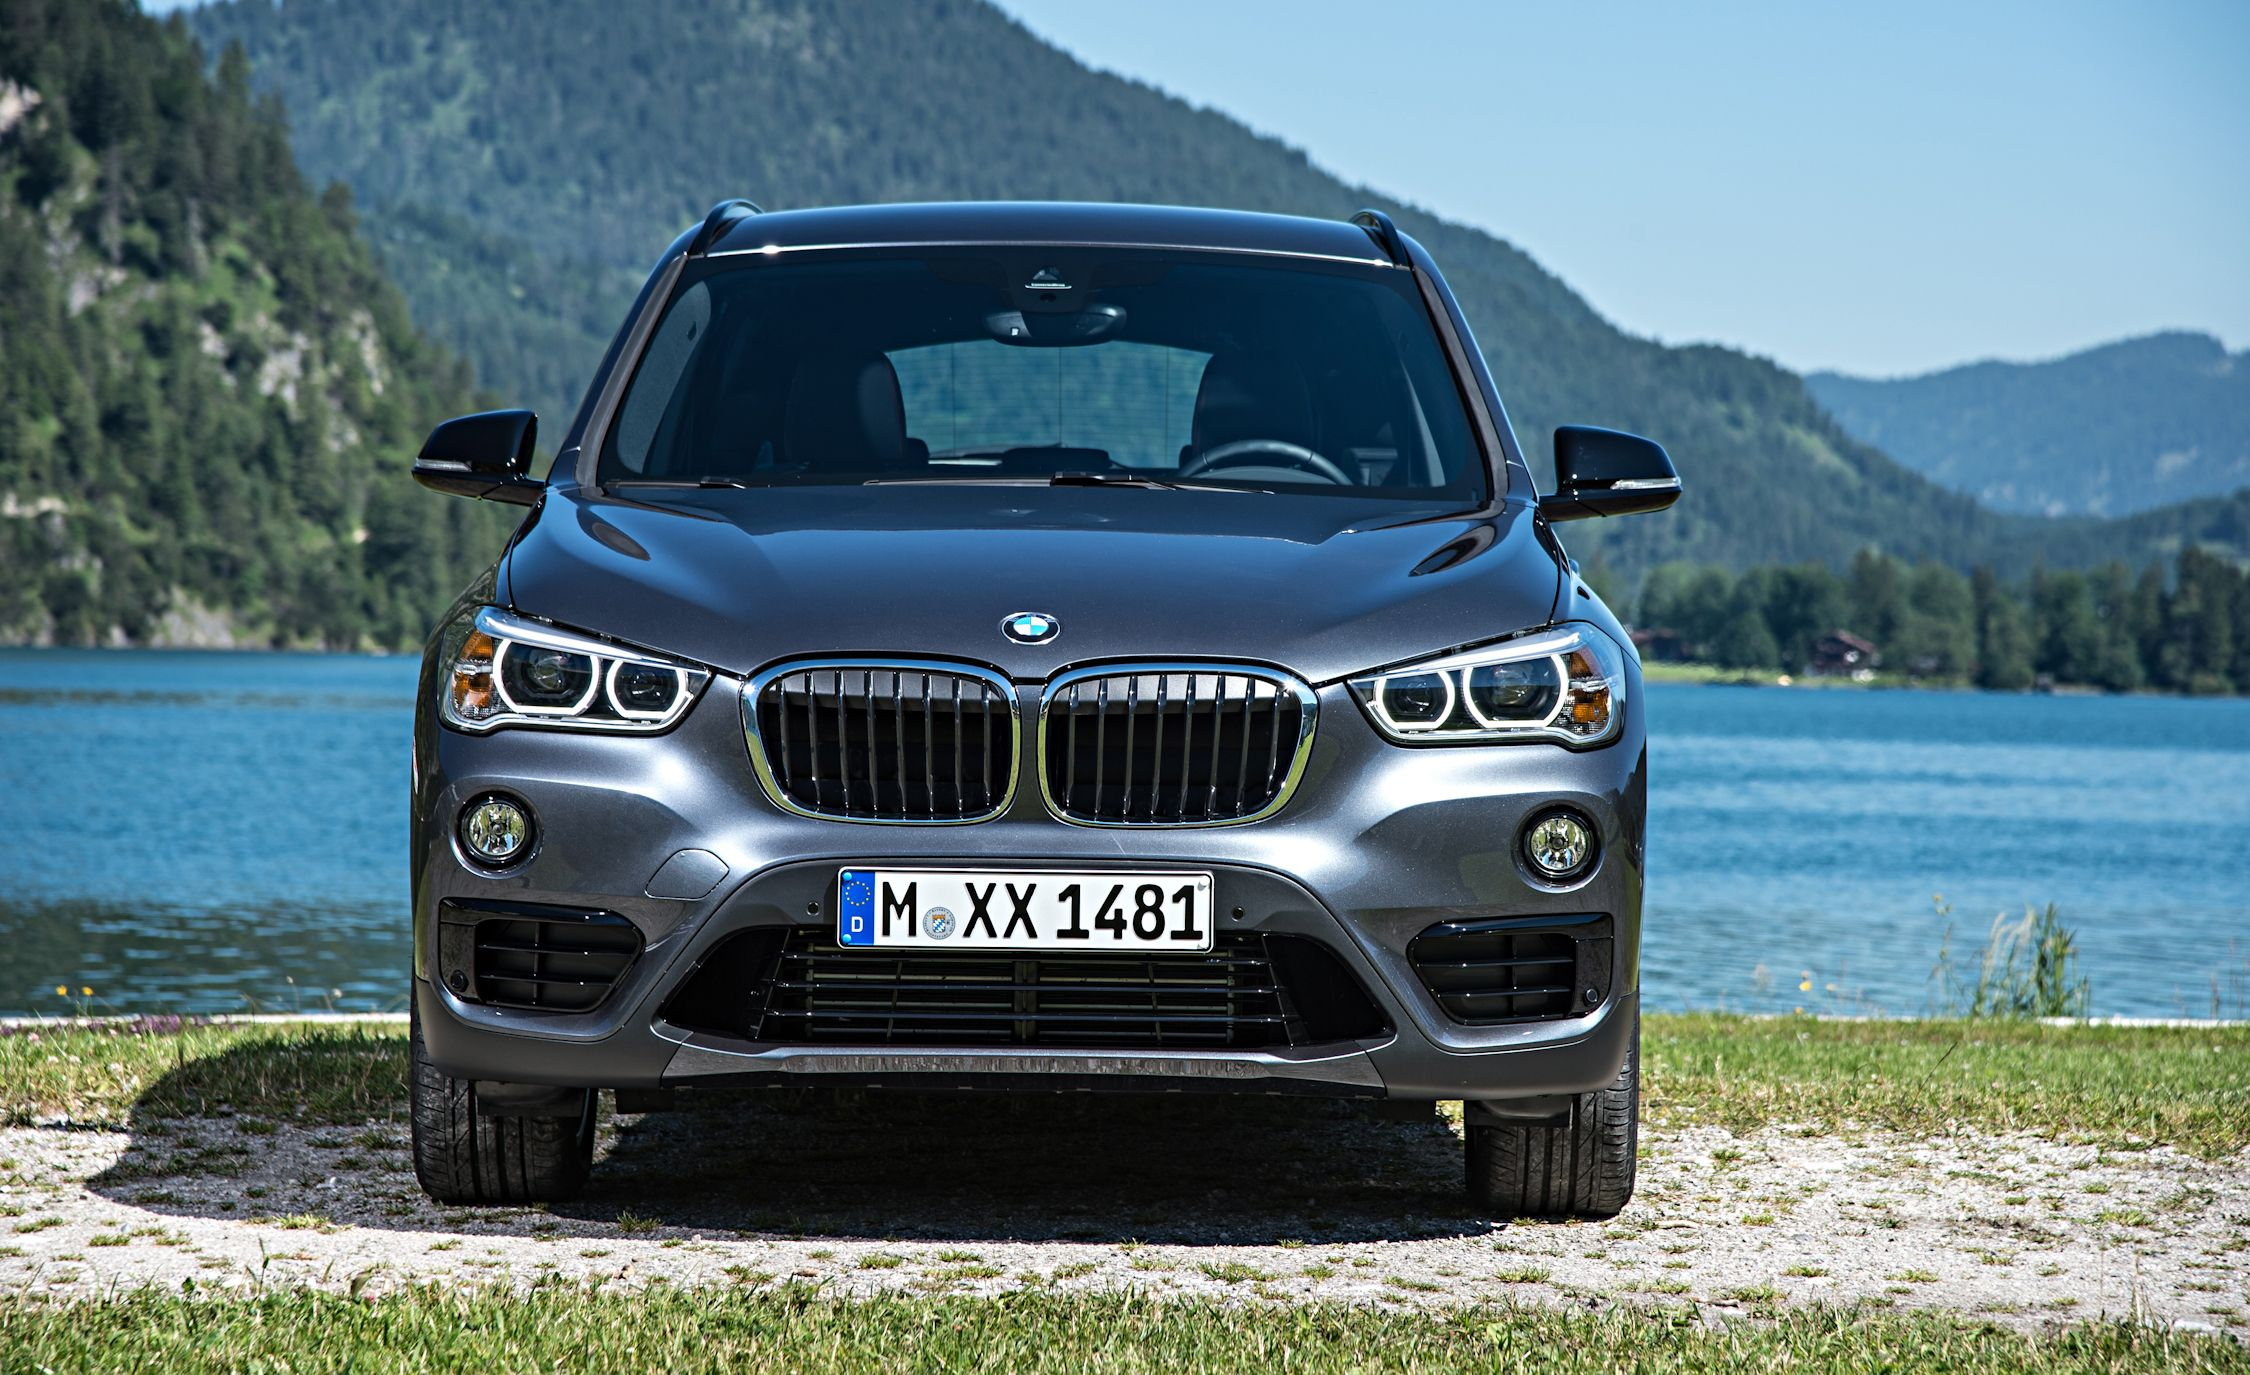 2019 Bmw X1 Reviews Bmw X1 Price Photos And Specs Car And Driver